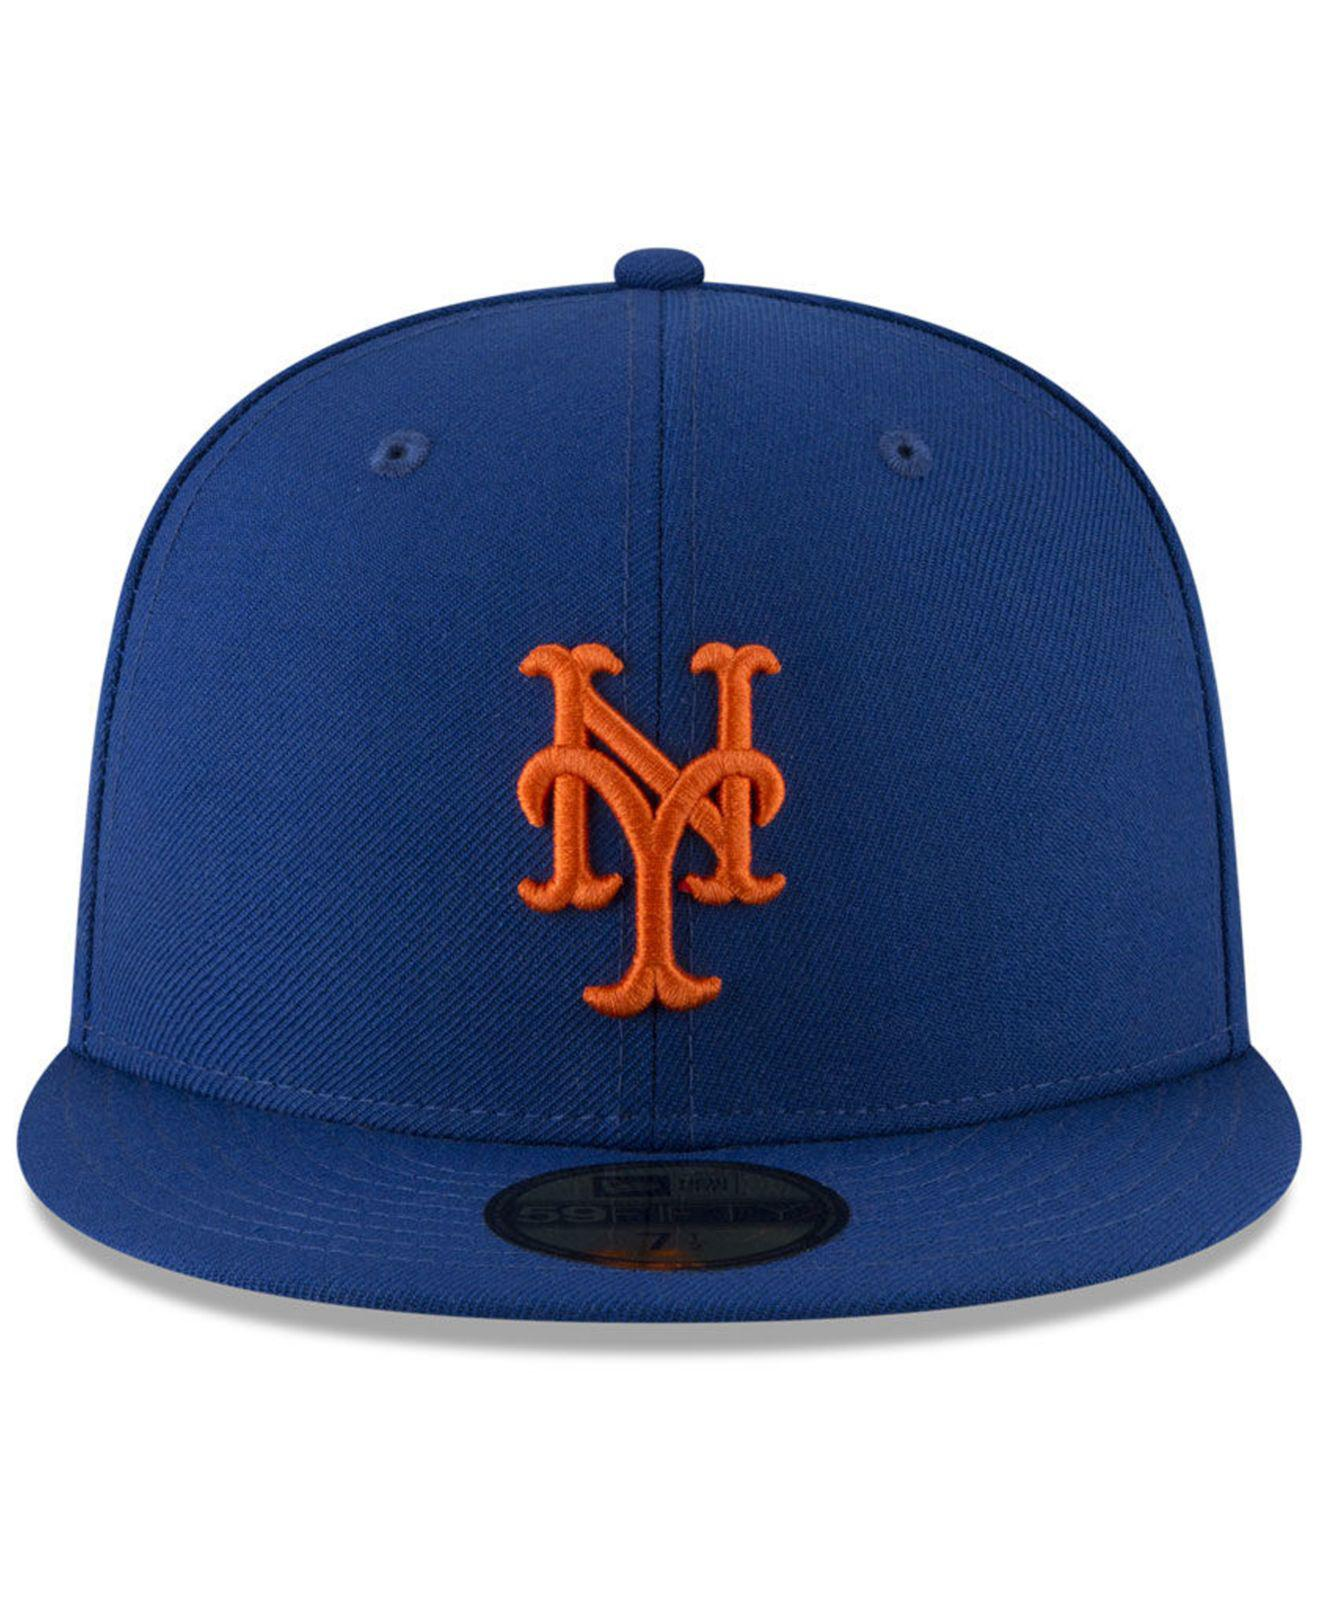 buy online fe293 b3f9d ... low cost lyst ktz new york mets jersey custom 59fifty fitted cap in  blue for men